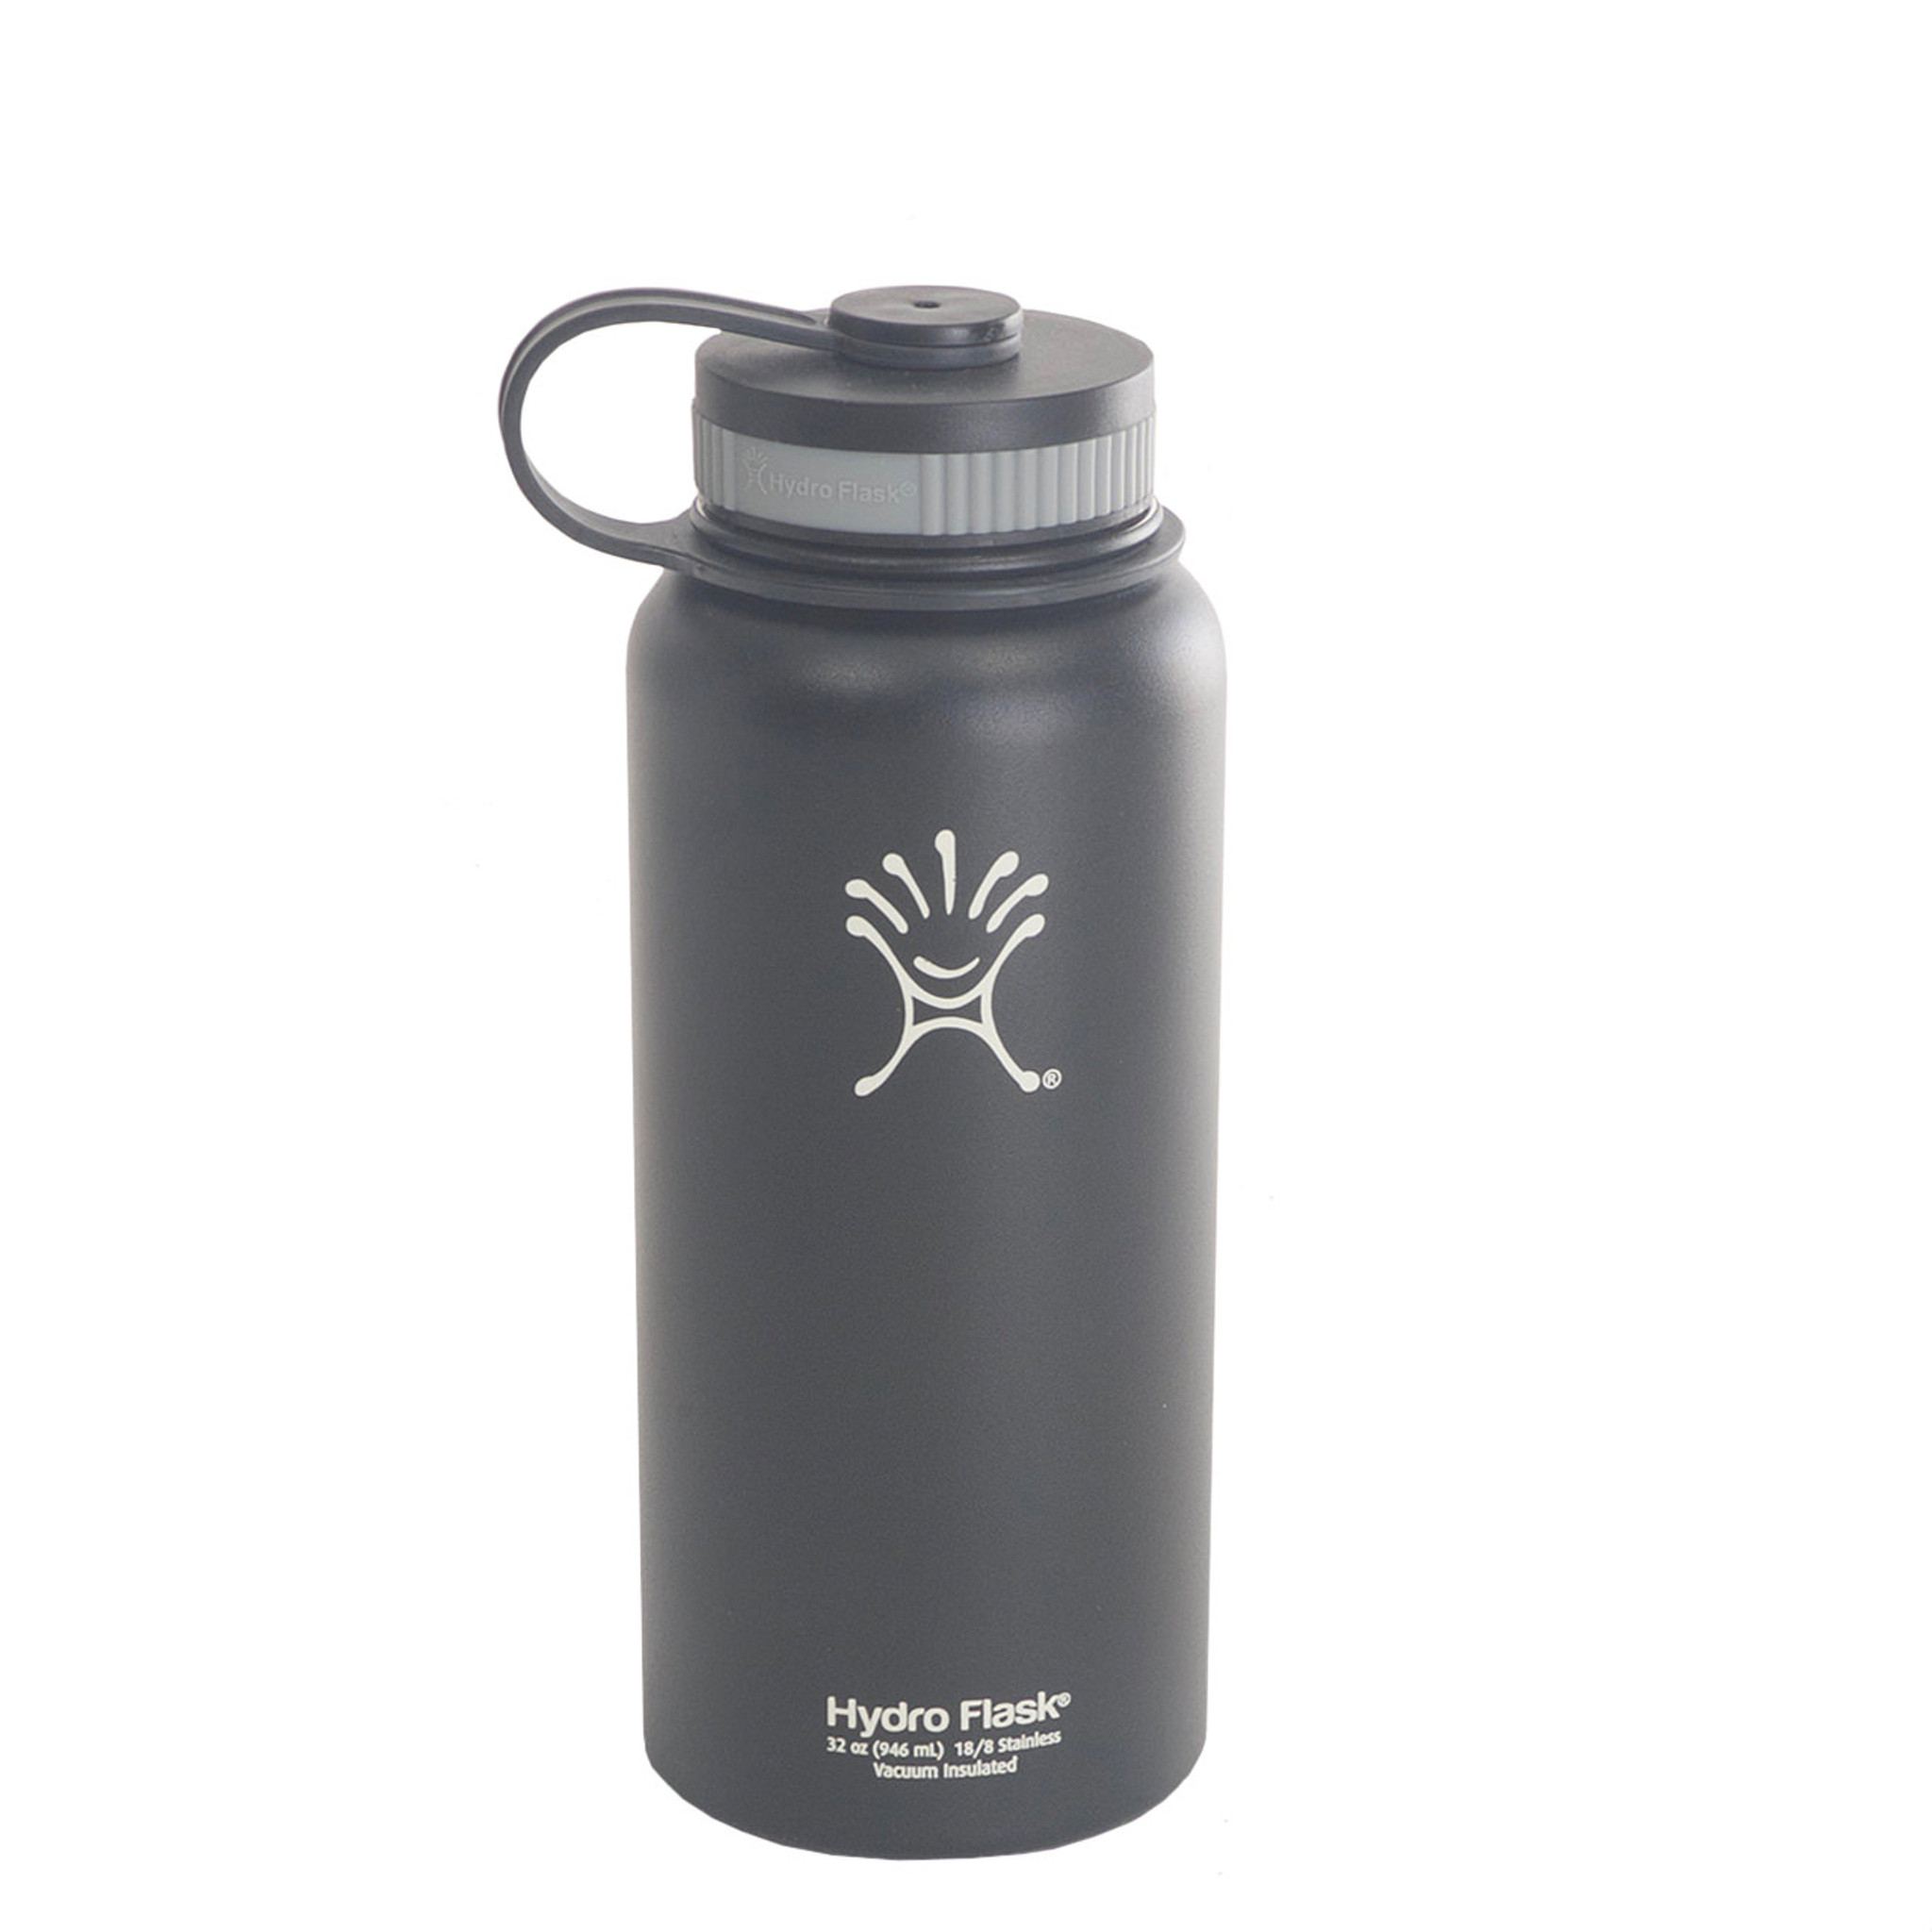 Limited Edition 32 oz BPA-Free Stainless Steel Hydro Flask 9be26542e